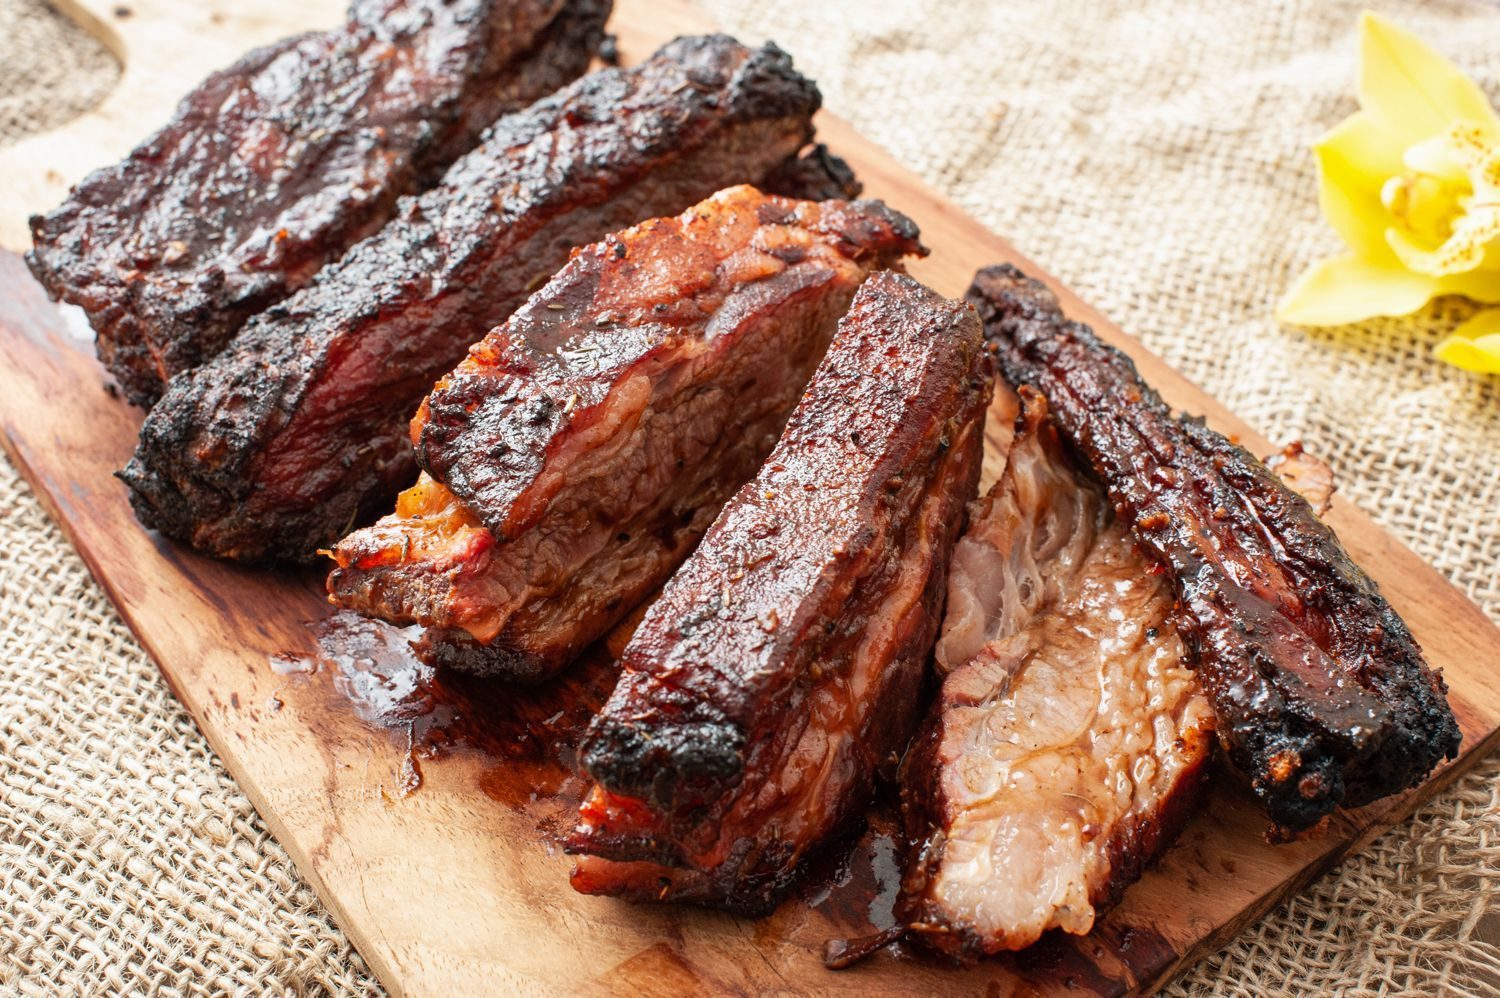 How Do You Make Unforgettable Slow Grilled Beef Ribs Recipe Bbq Beef Rib Recipes Bbq Beef Ribs Grilled Beef Ribs